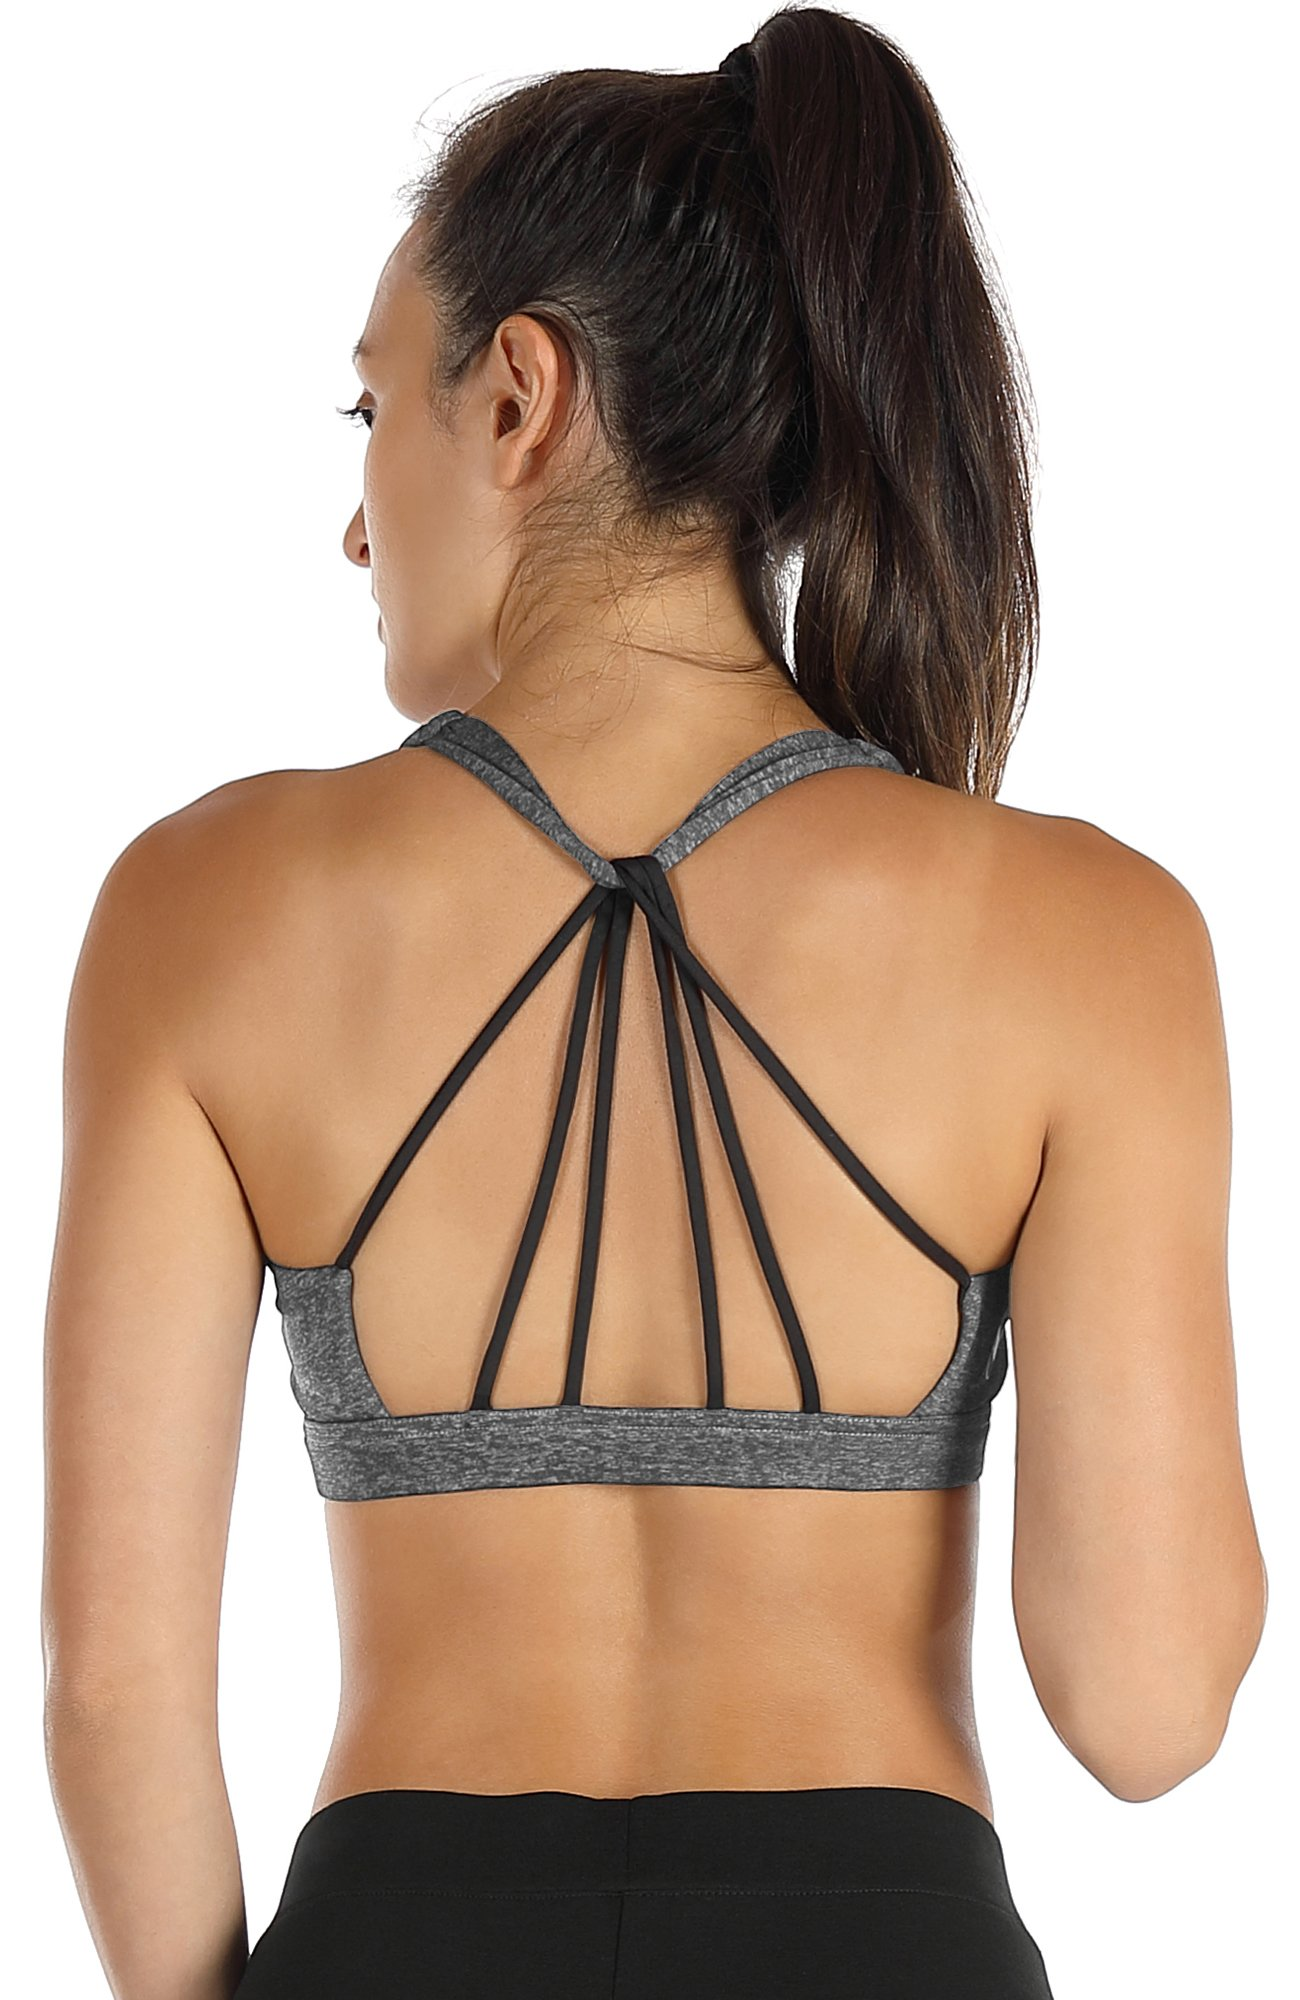 icyzone Padded Strappy Sports Bra Yoga Tops Activewear Workout Clothes for Women(S,Charcoal) by icyzone